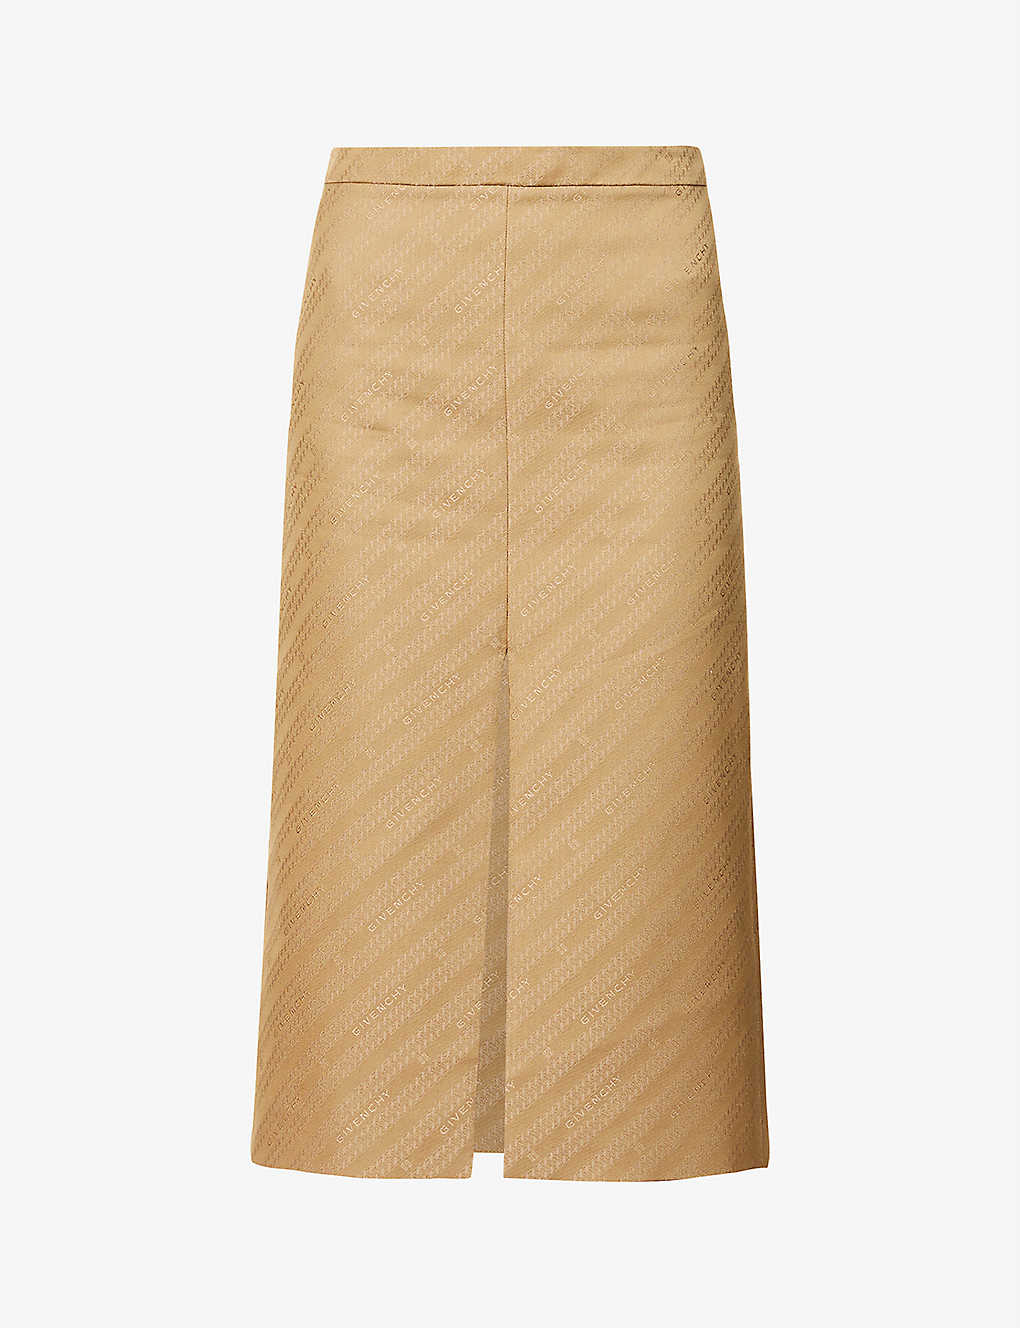 GIVENCHY: Brand-patterned high-rise cotton-blend skirt